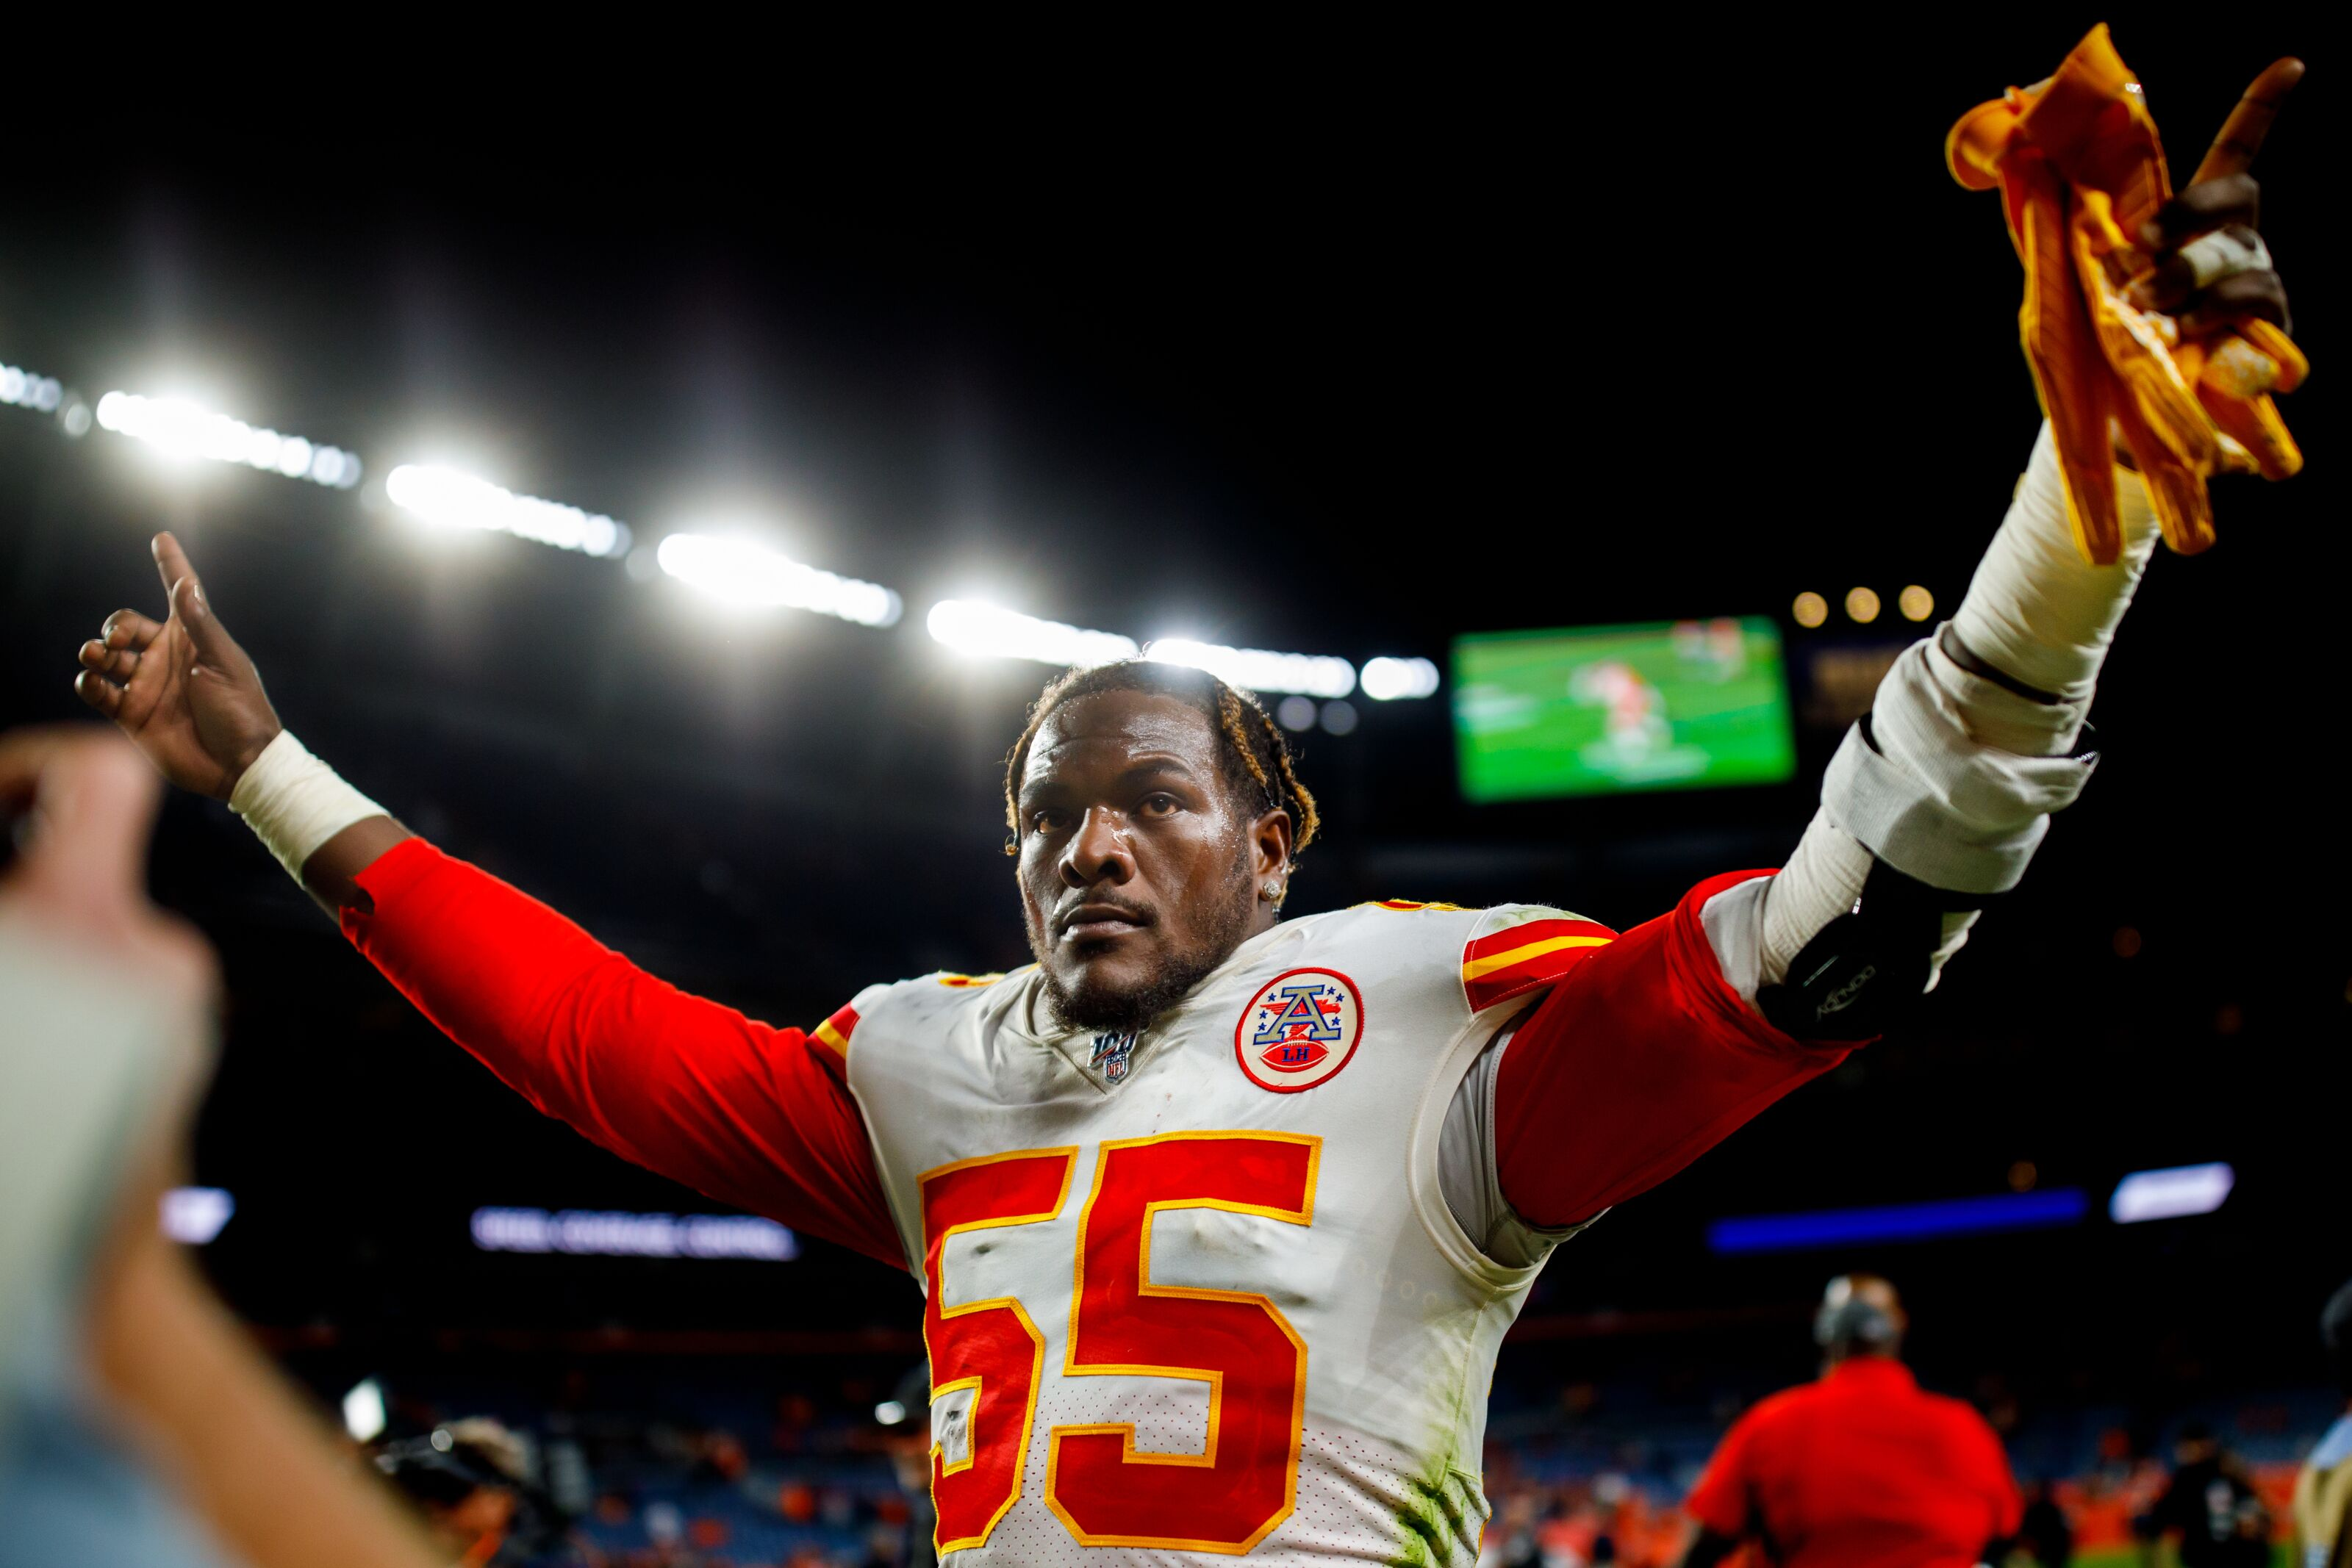 Chiefs show character, toughness after Patrick Mahomes injury